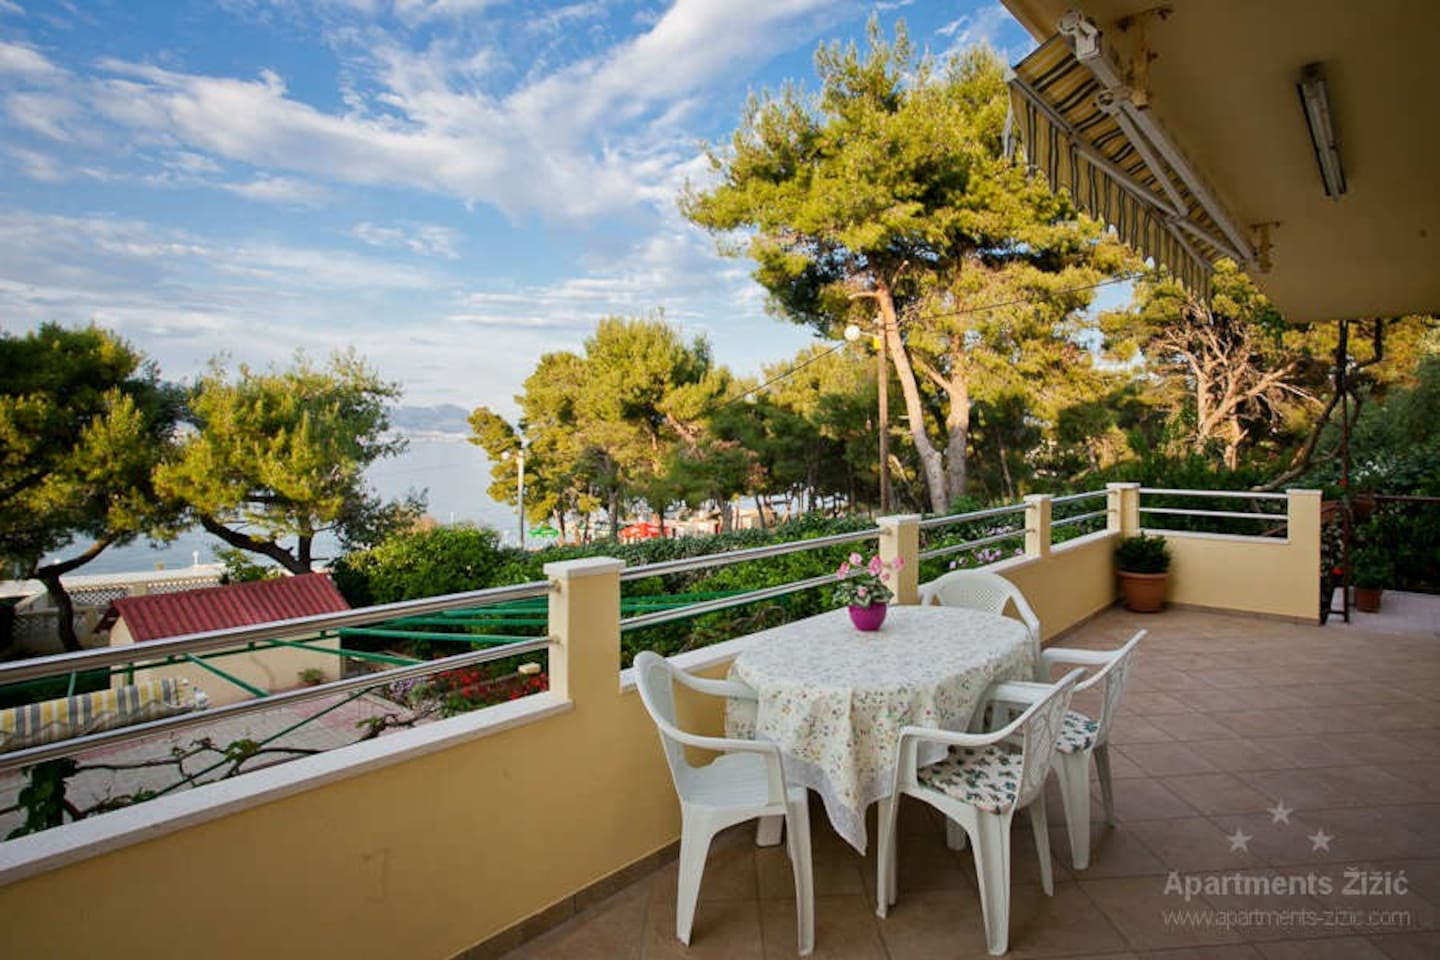 Terrace in front of the apartment with beautiful view on sea and beach.